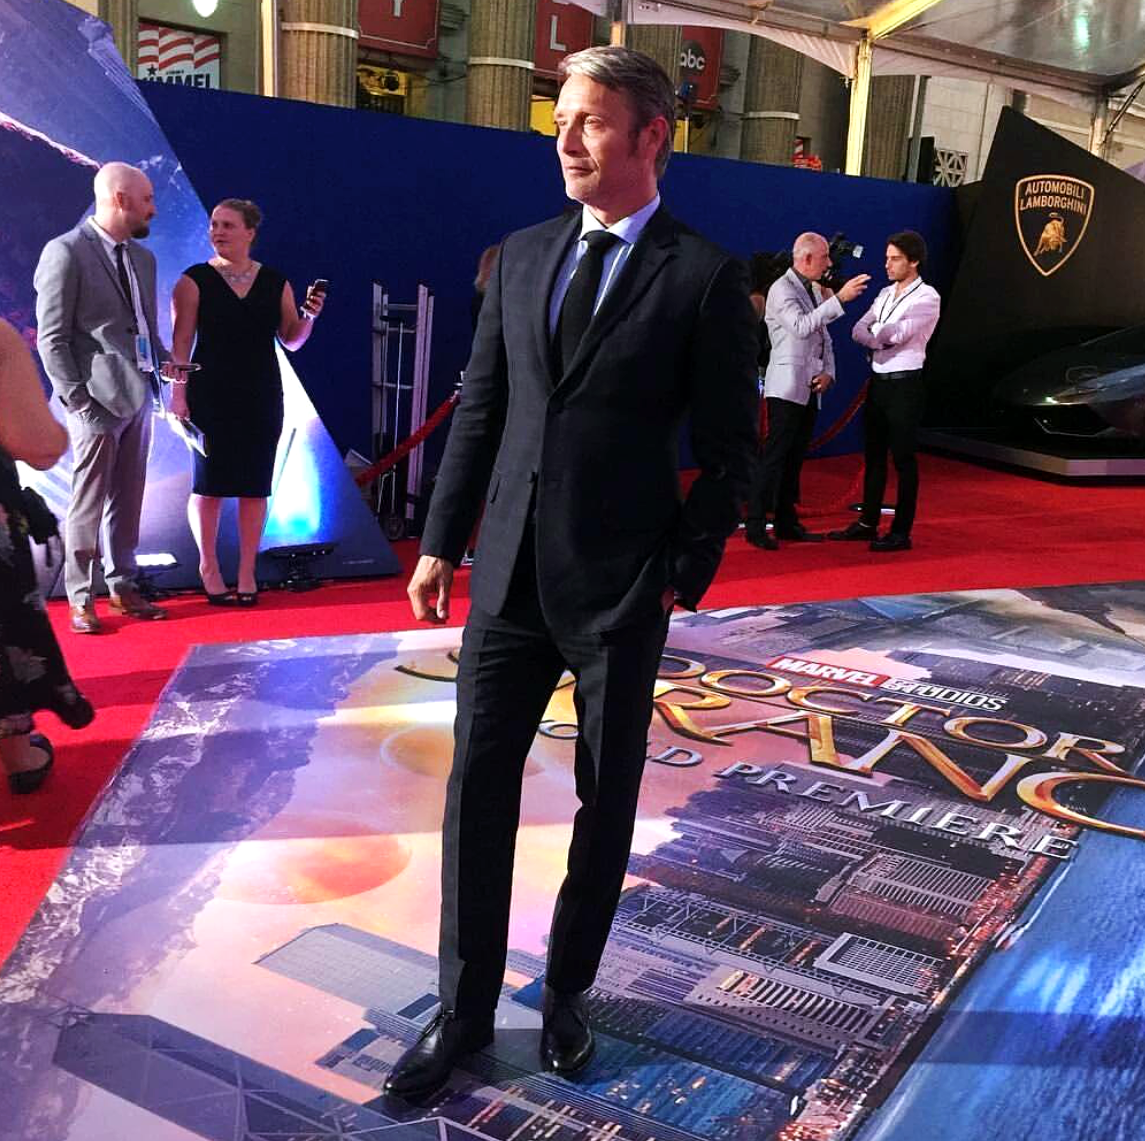 doctor-strange-movie-premiere-mads-mikkelsen-la